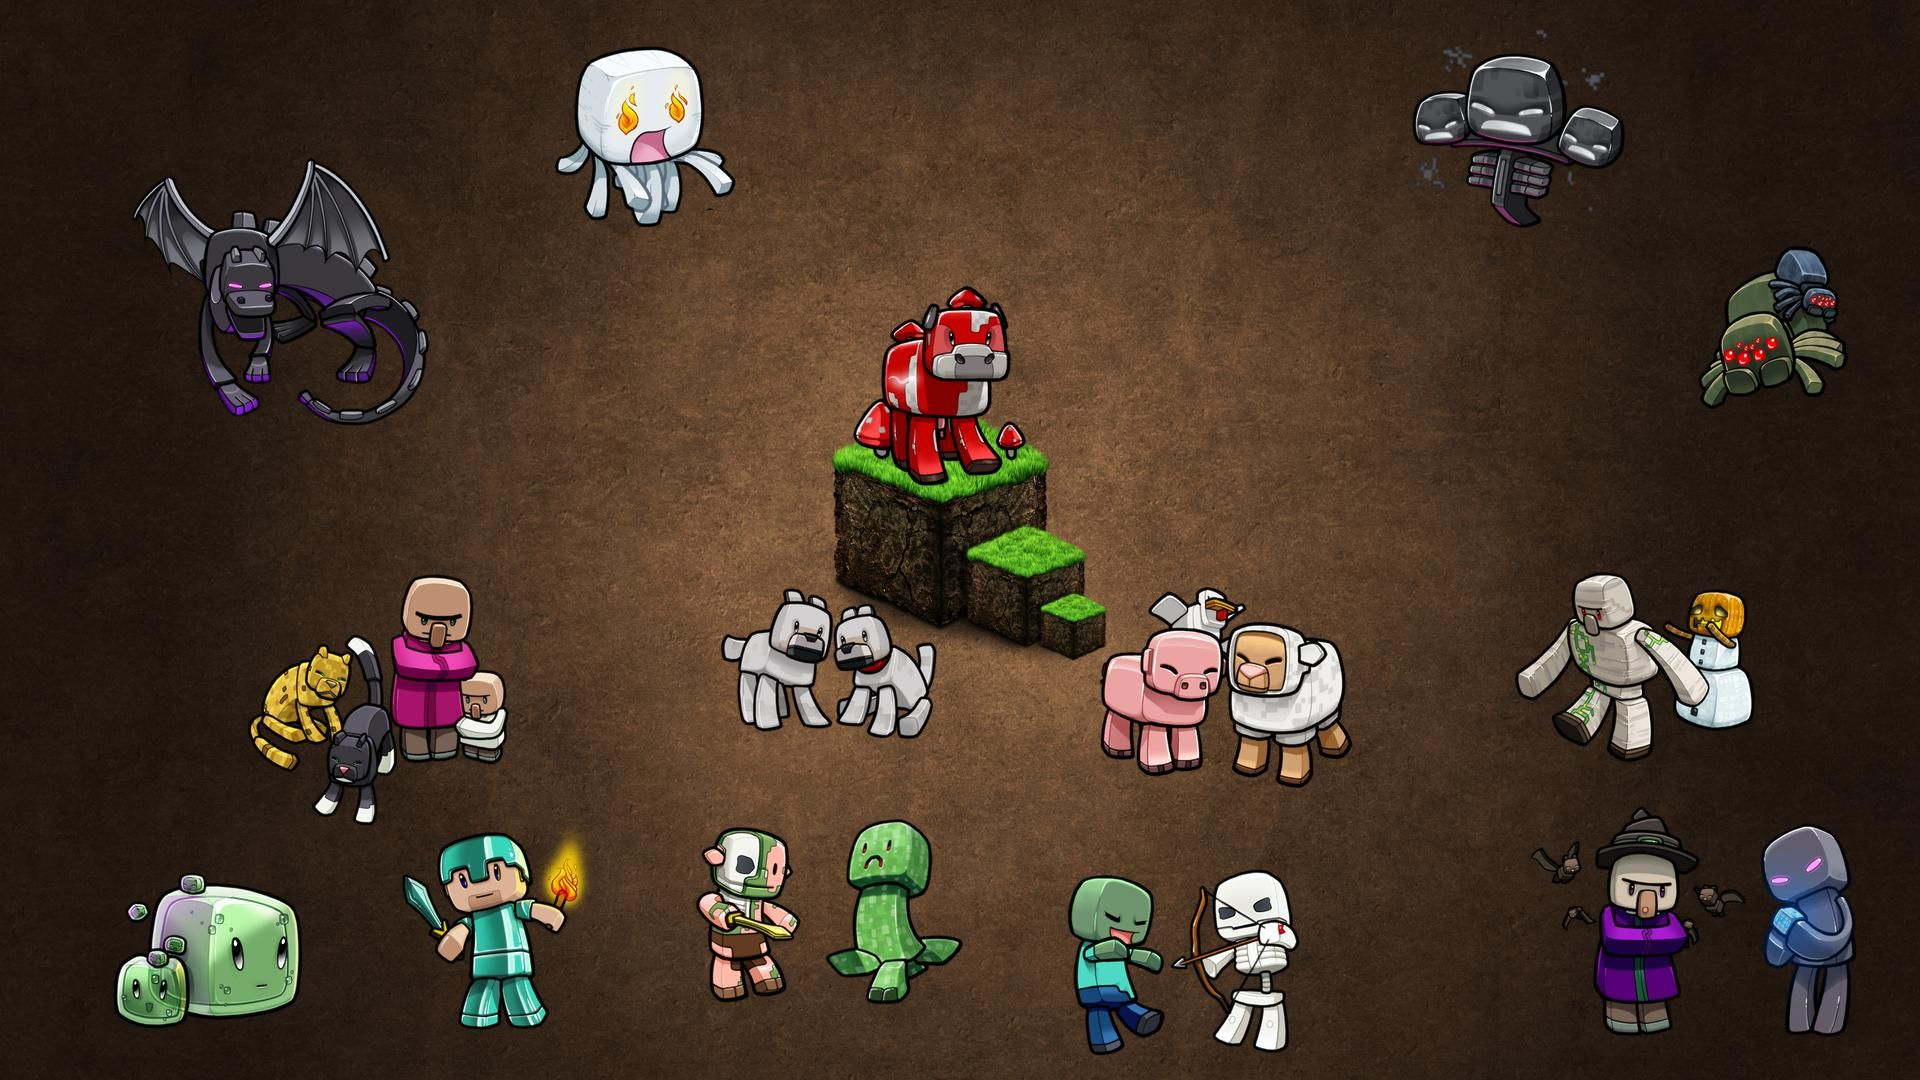 Great Wallpaper Minecraft Google - 03bc36ad2f8441ee30e2a97cfe4421b9  Collection_434891.jpg